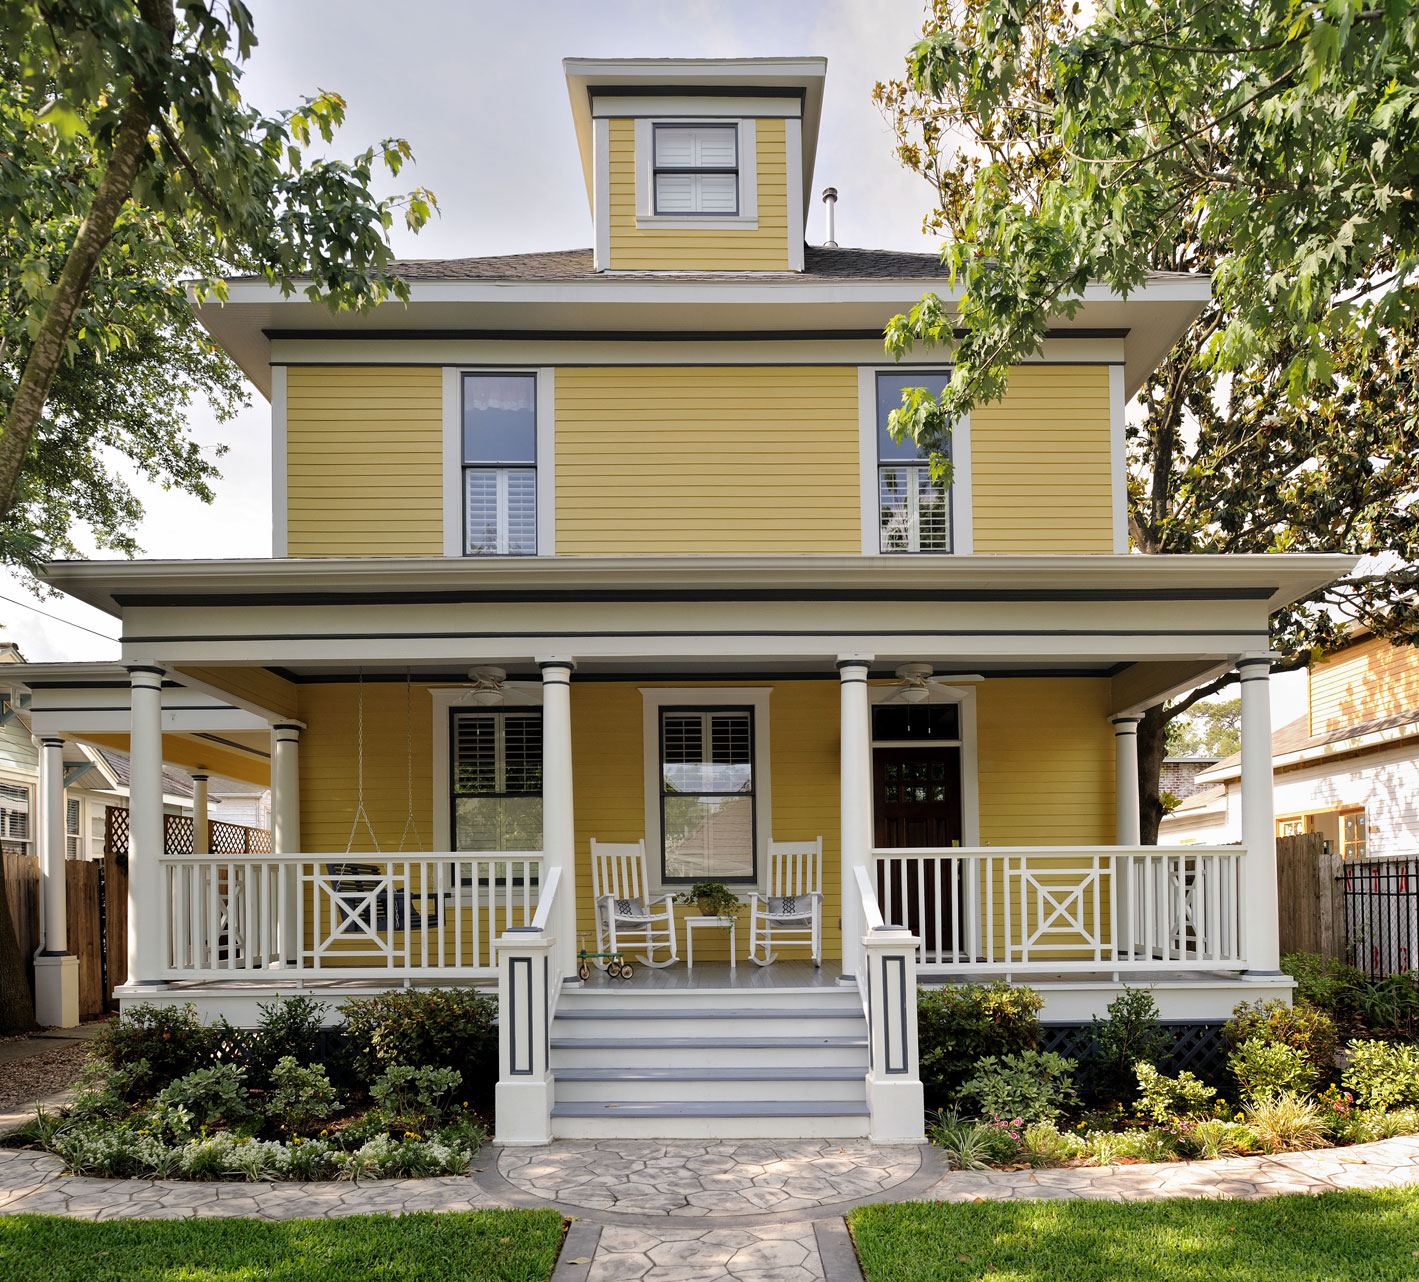 Yellow vintage style home with porch, Designer: Carla Aston